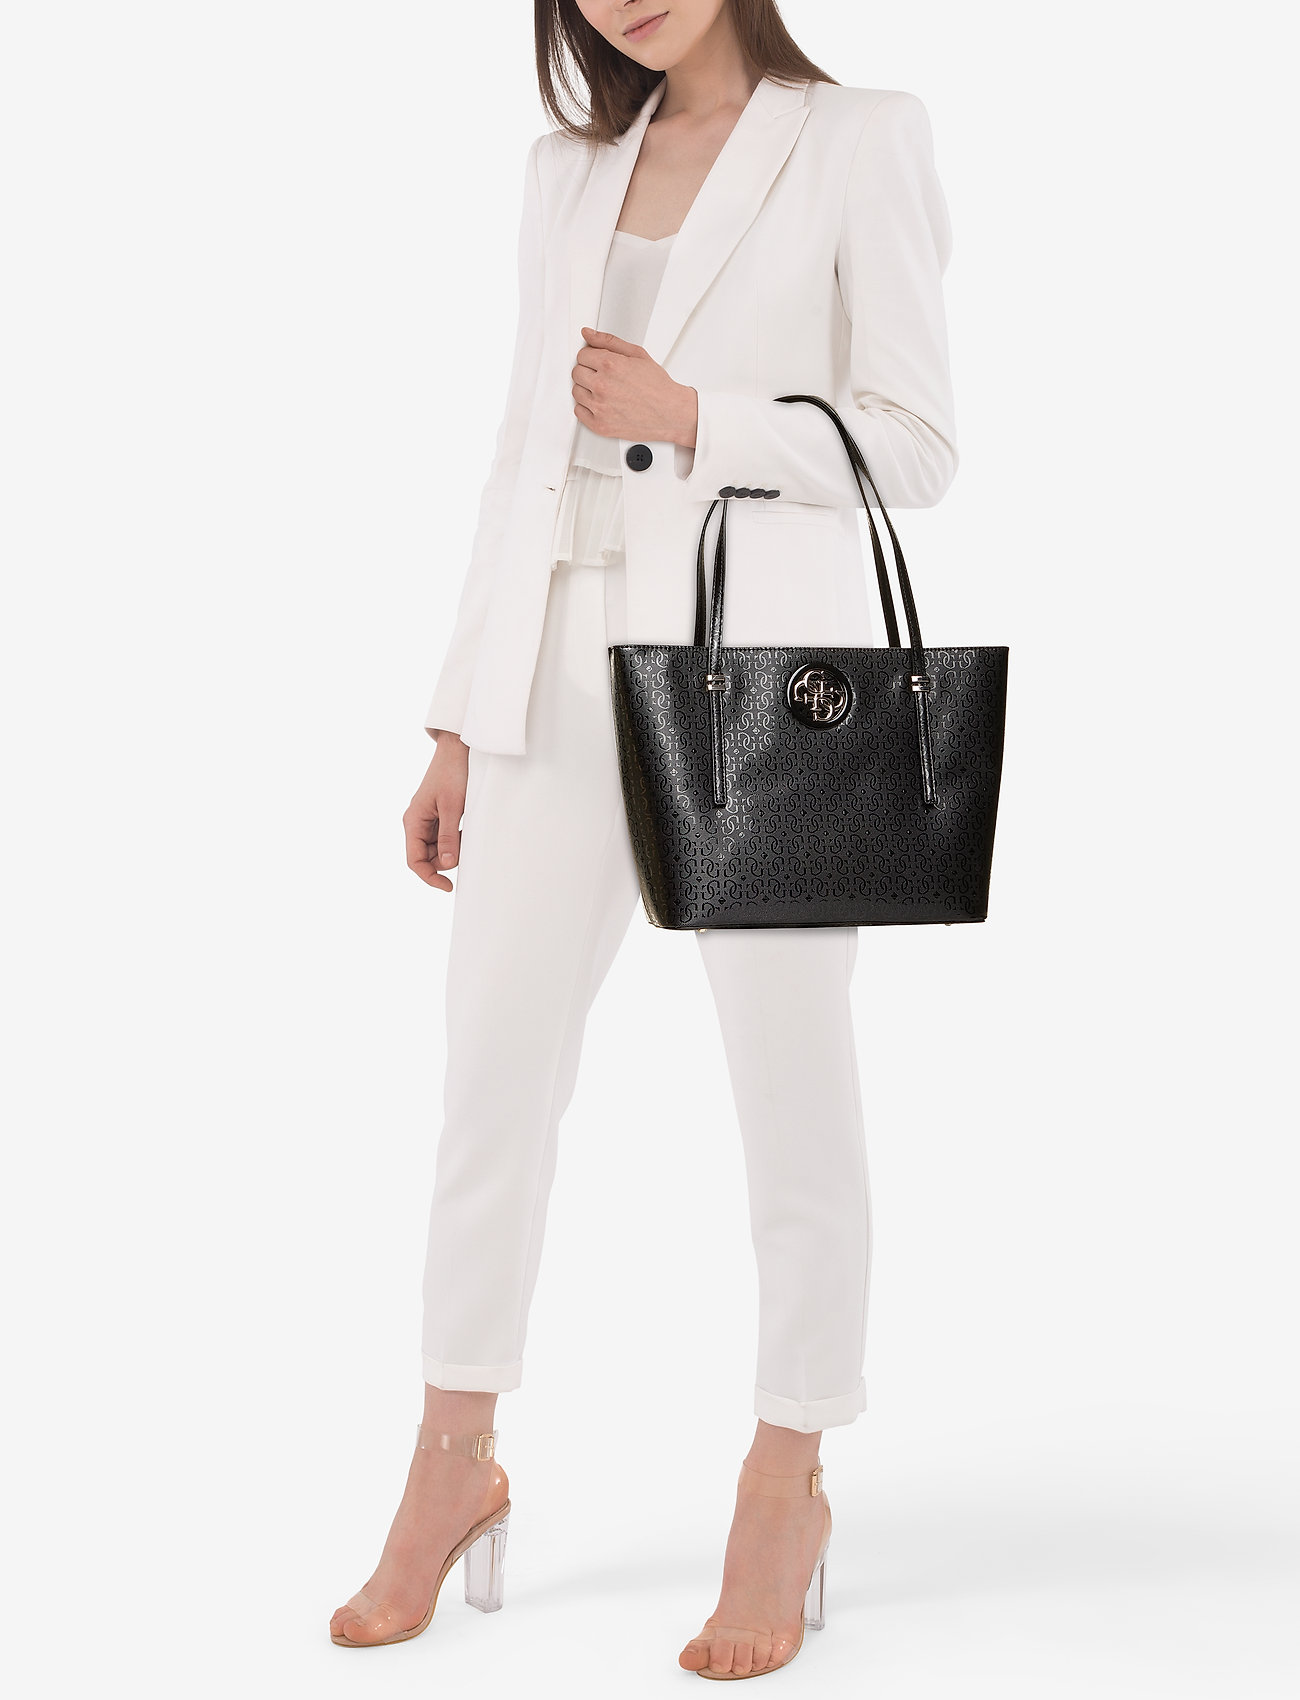 Guess OPEN ROAD TOTE @